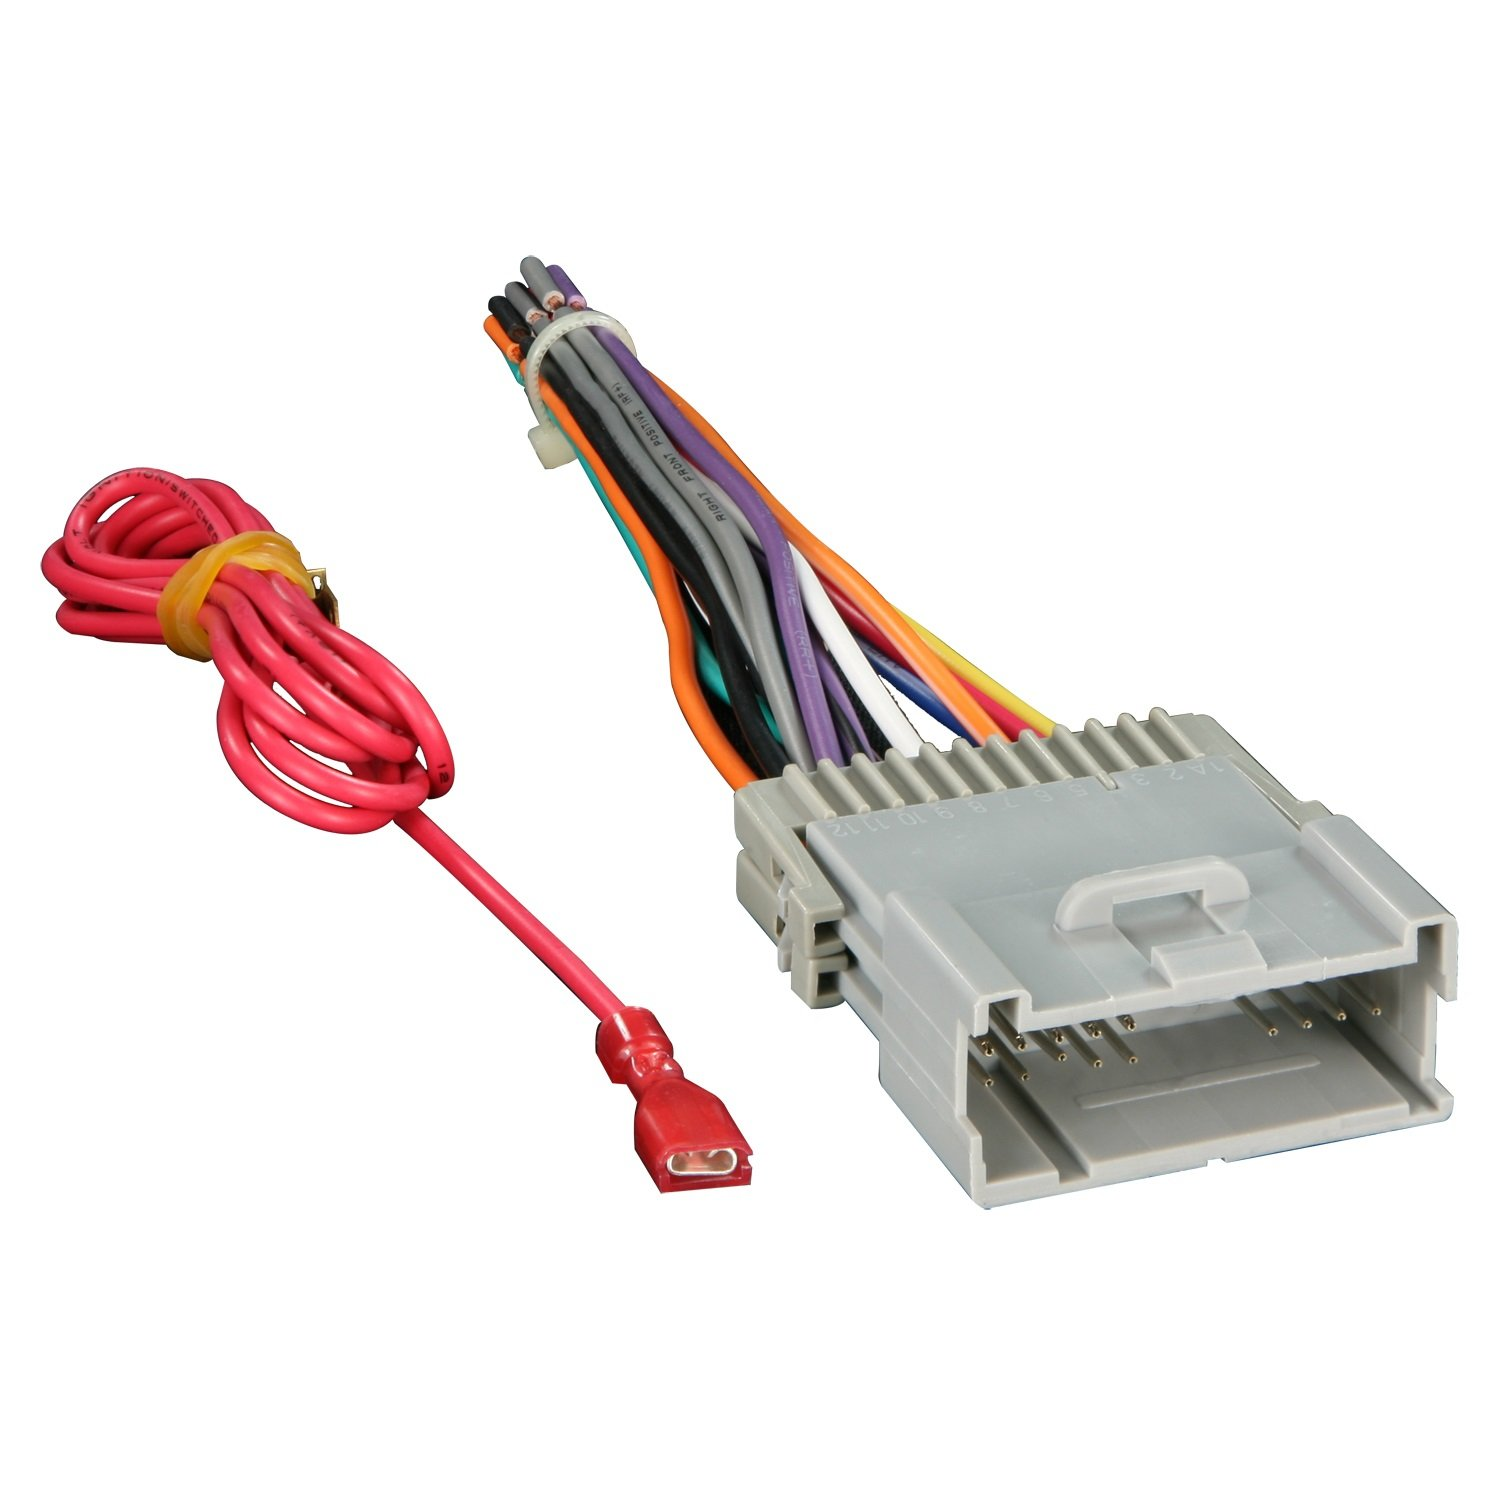 61eewxp9orL._SL1500_ amazon com metra 70 2003 radio wiring harness for gm 98 08 Hyundai Sonata Aftermarket Stereo Wiring Harness at alyssarenee.co